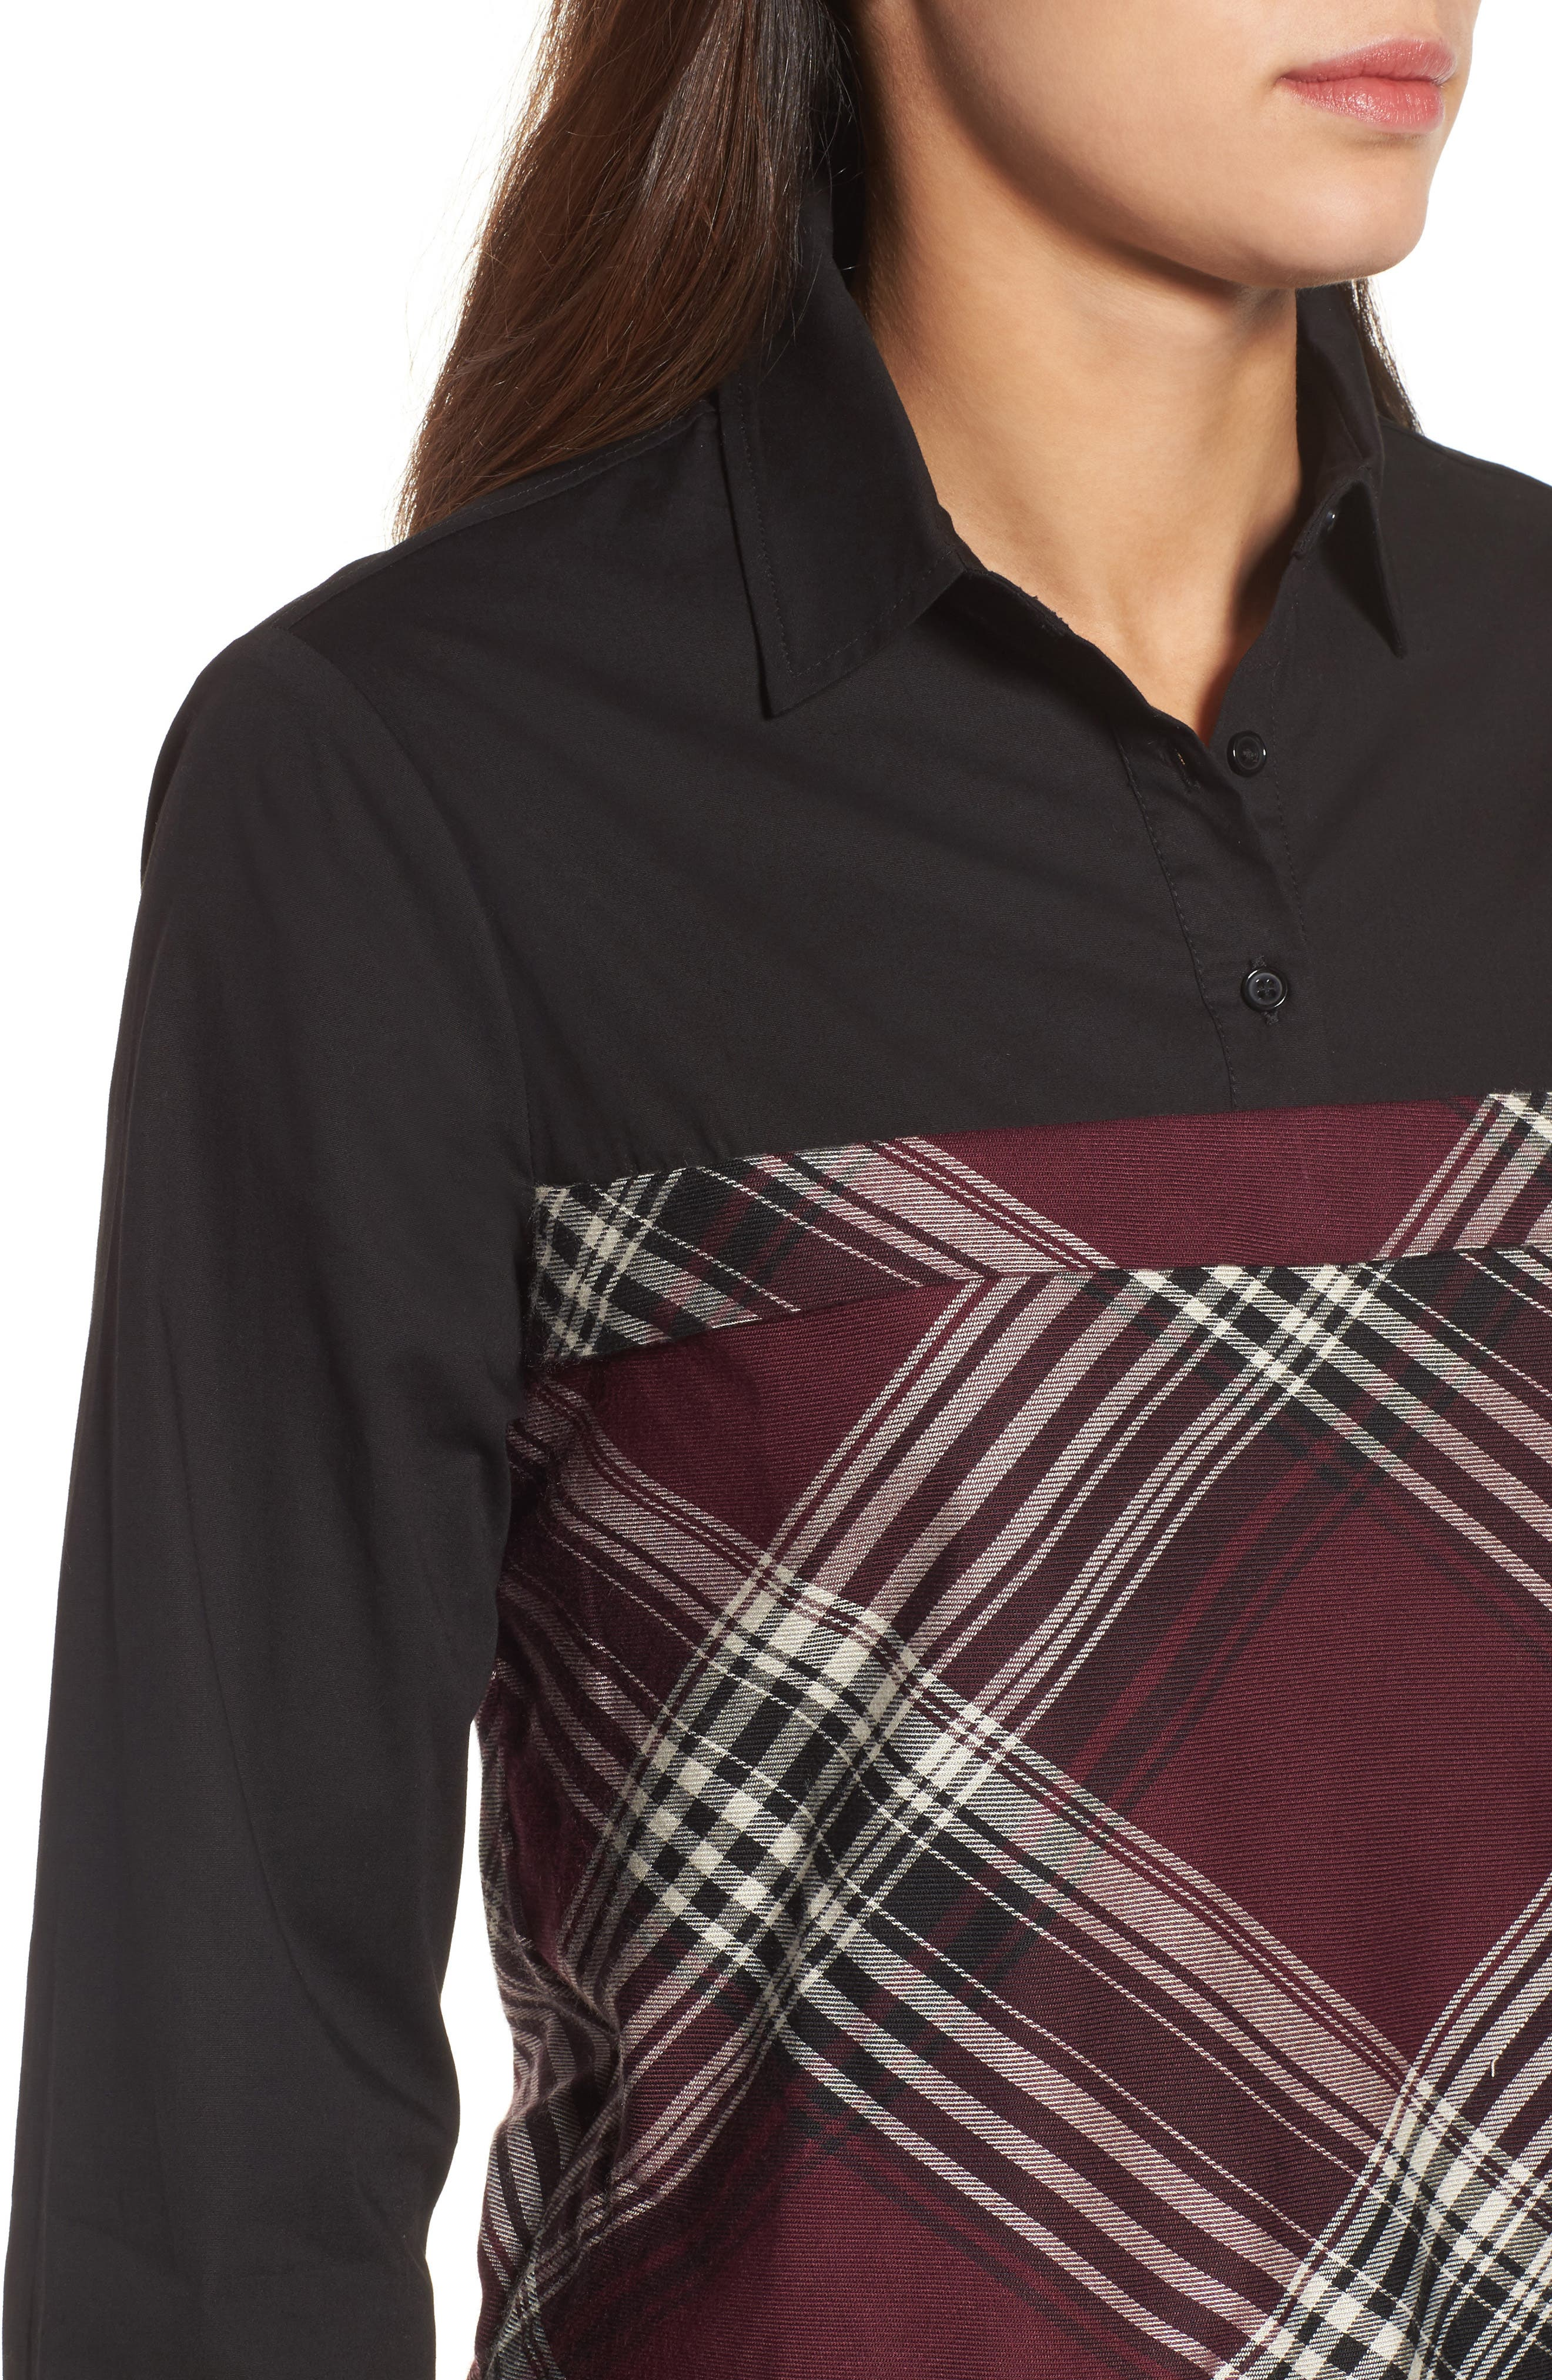 Plaid Corset Shirt,                             Alternate thumbnail 4, color,                             Wine/ Black Plaid/ Black